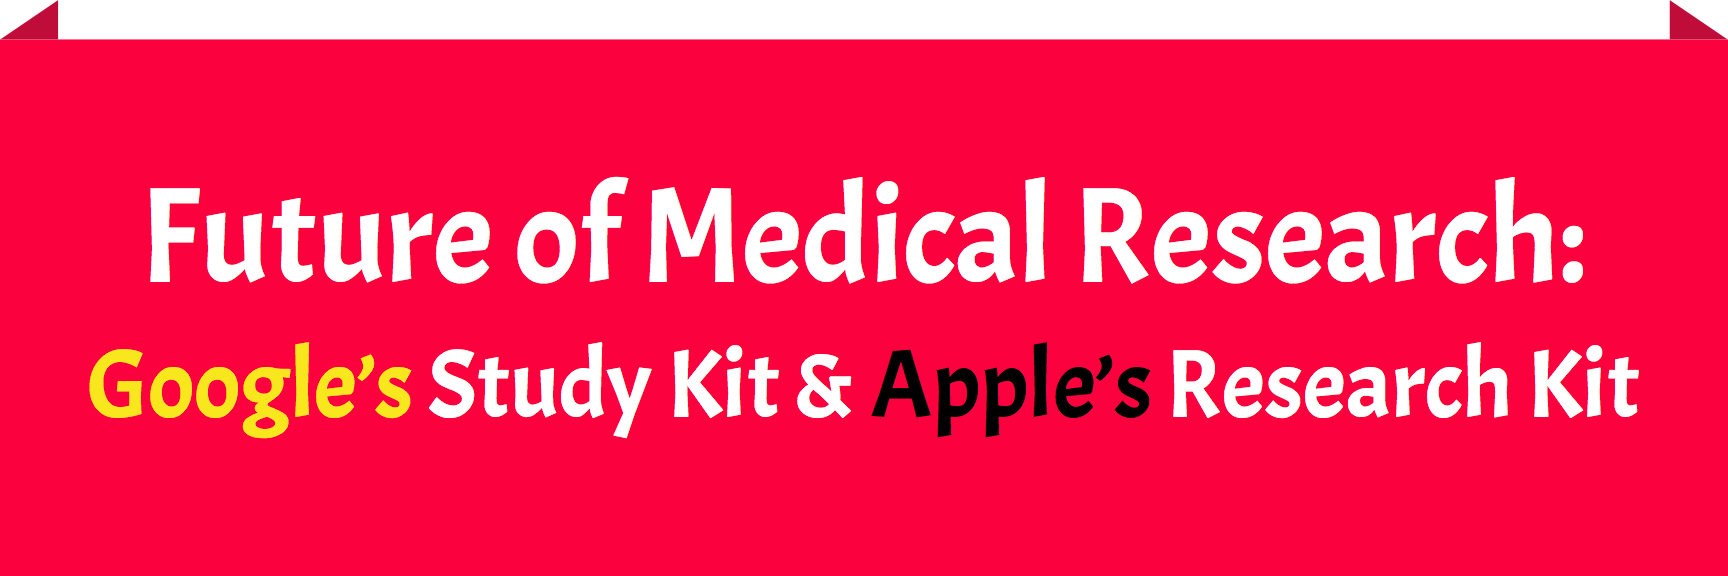 apple's researchkit and google's studykit